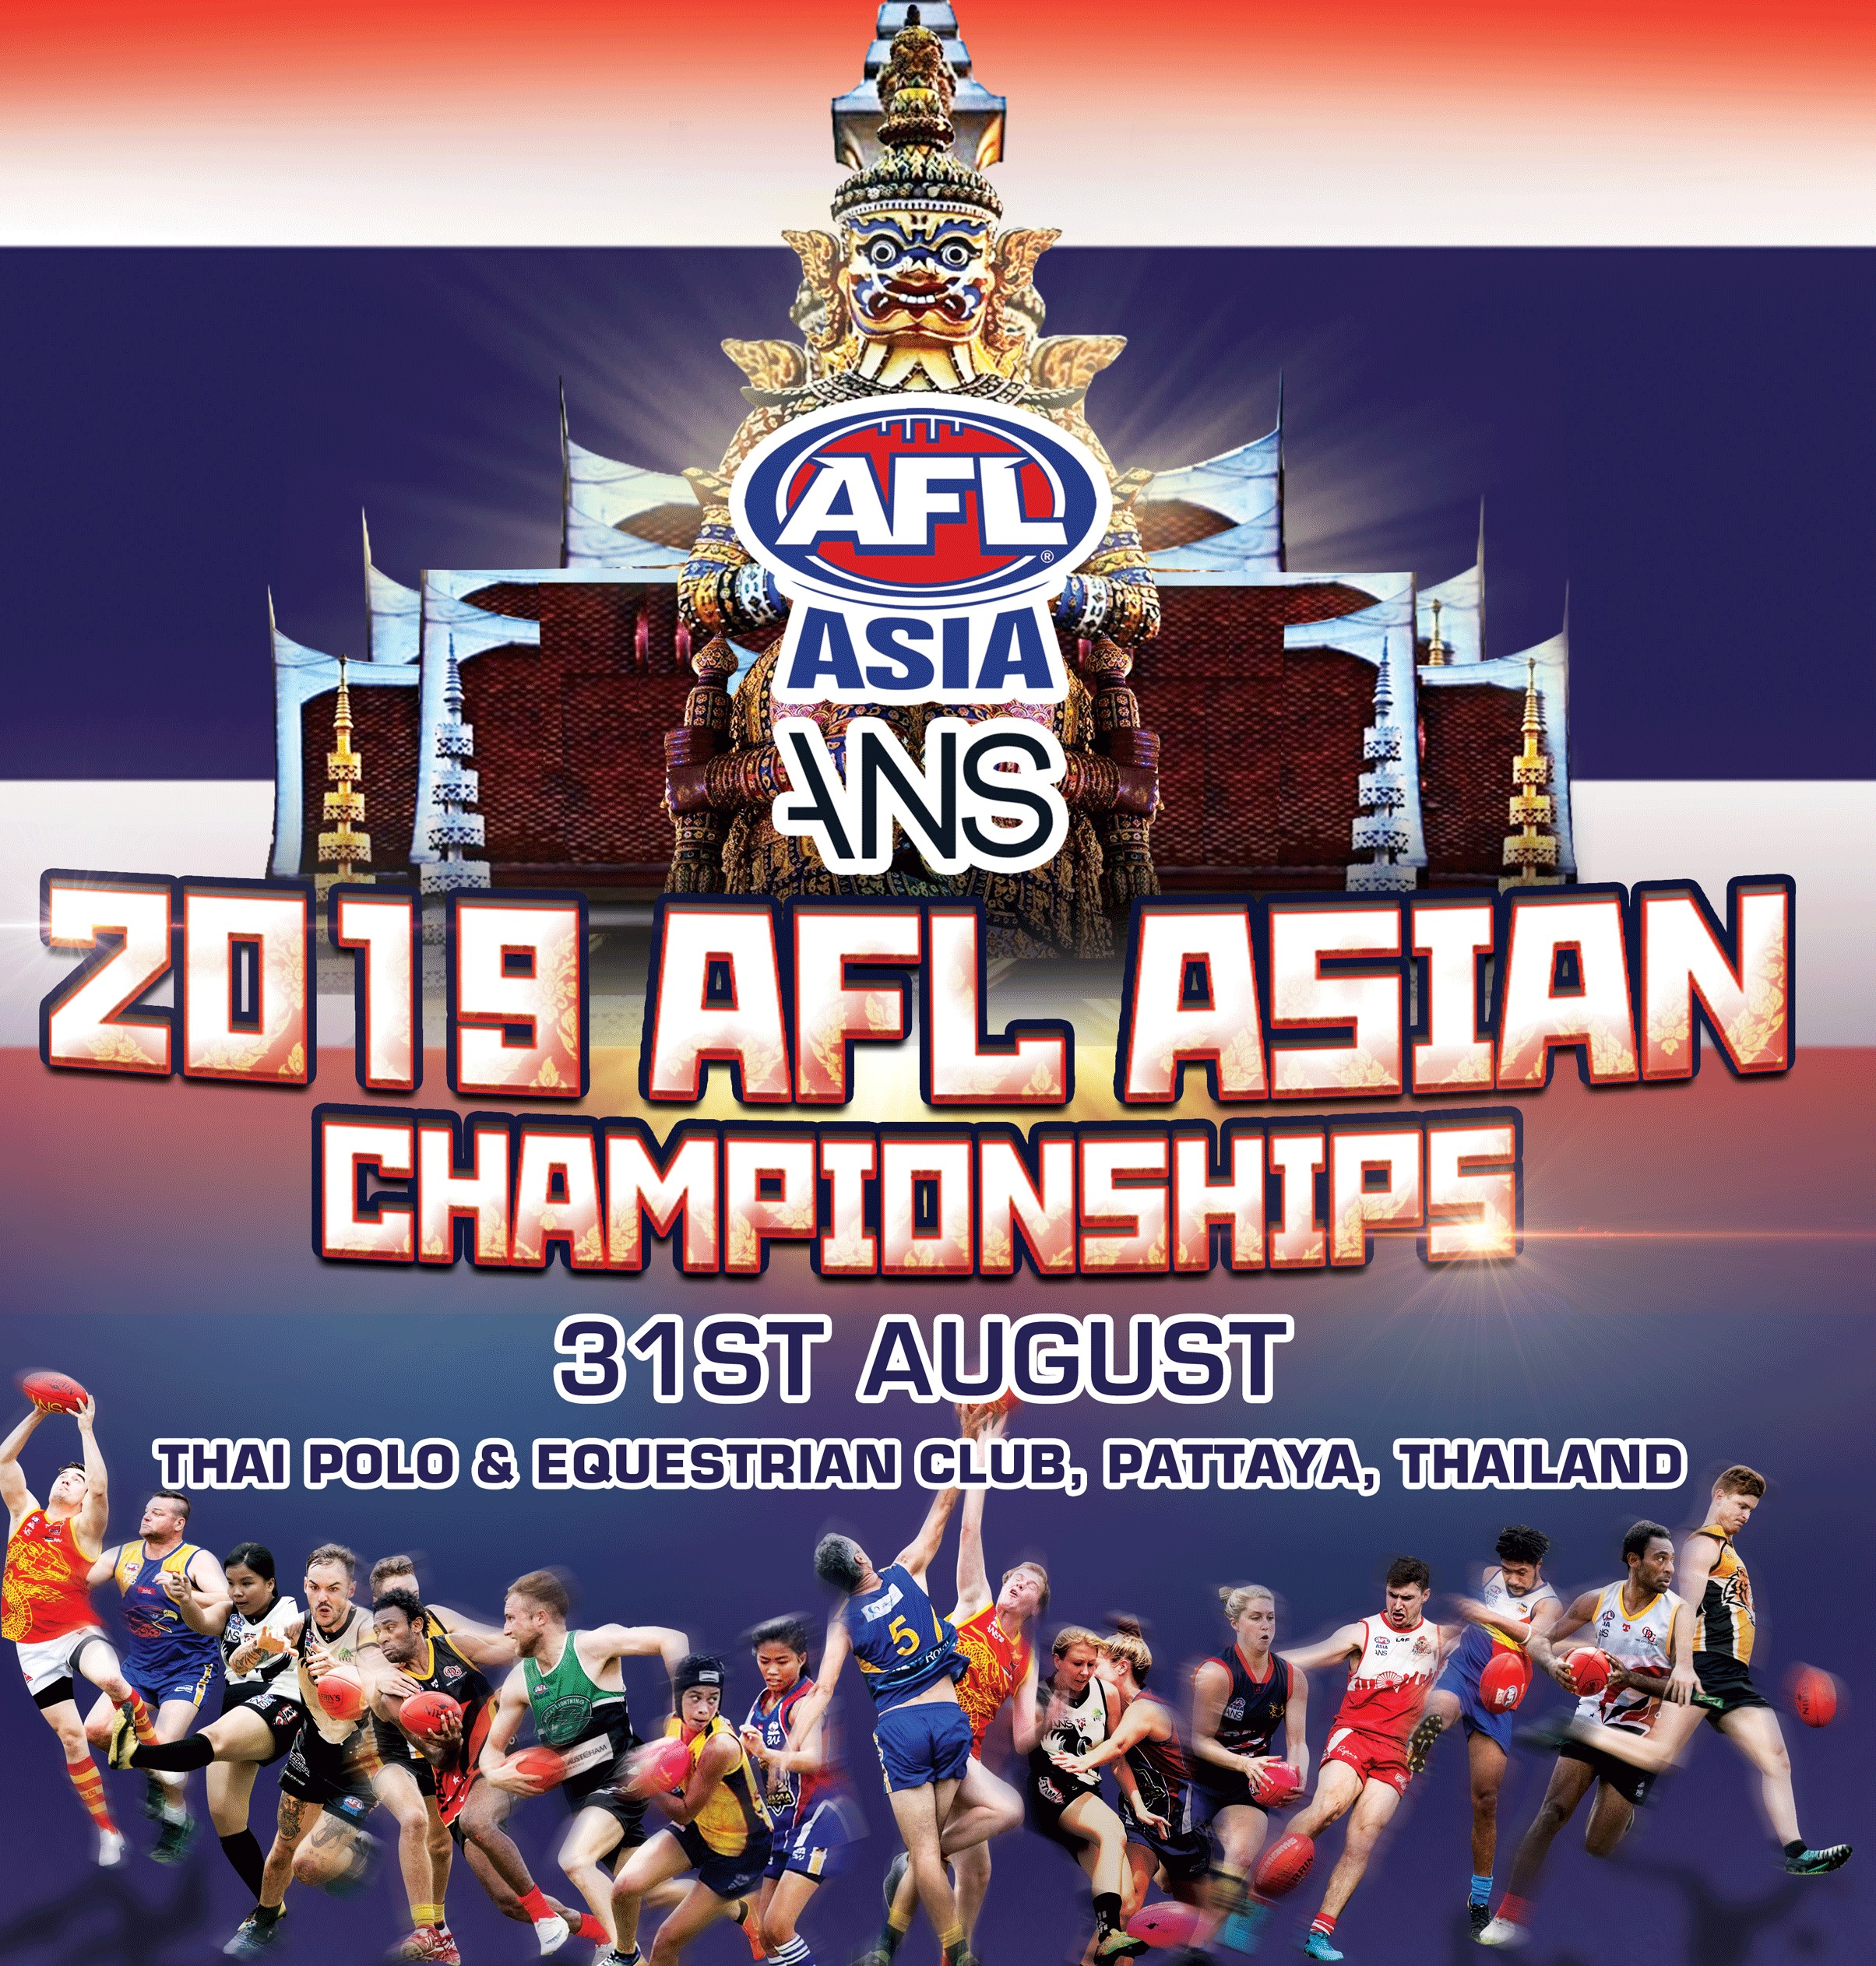 AFL Asian Championships 2019 Thailand